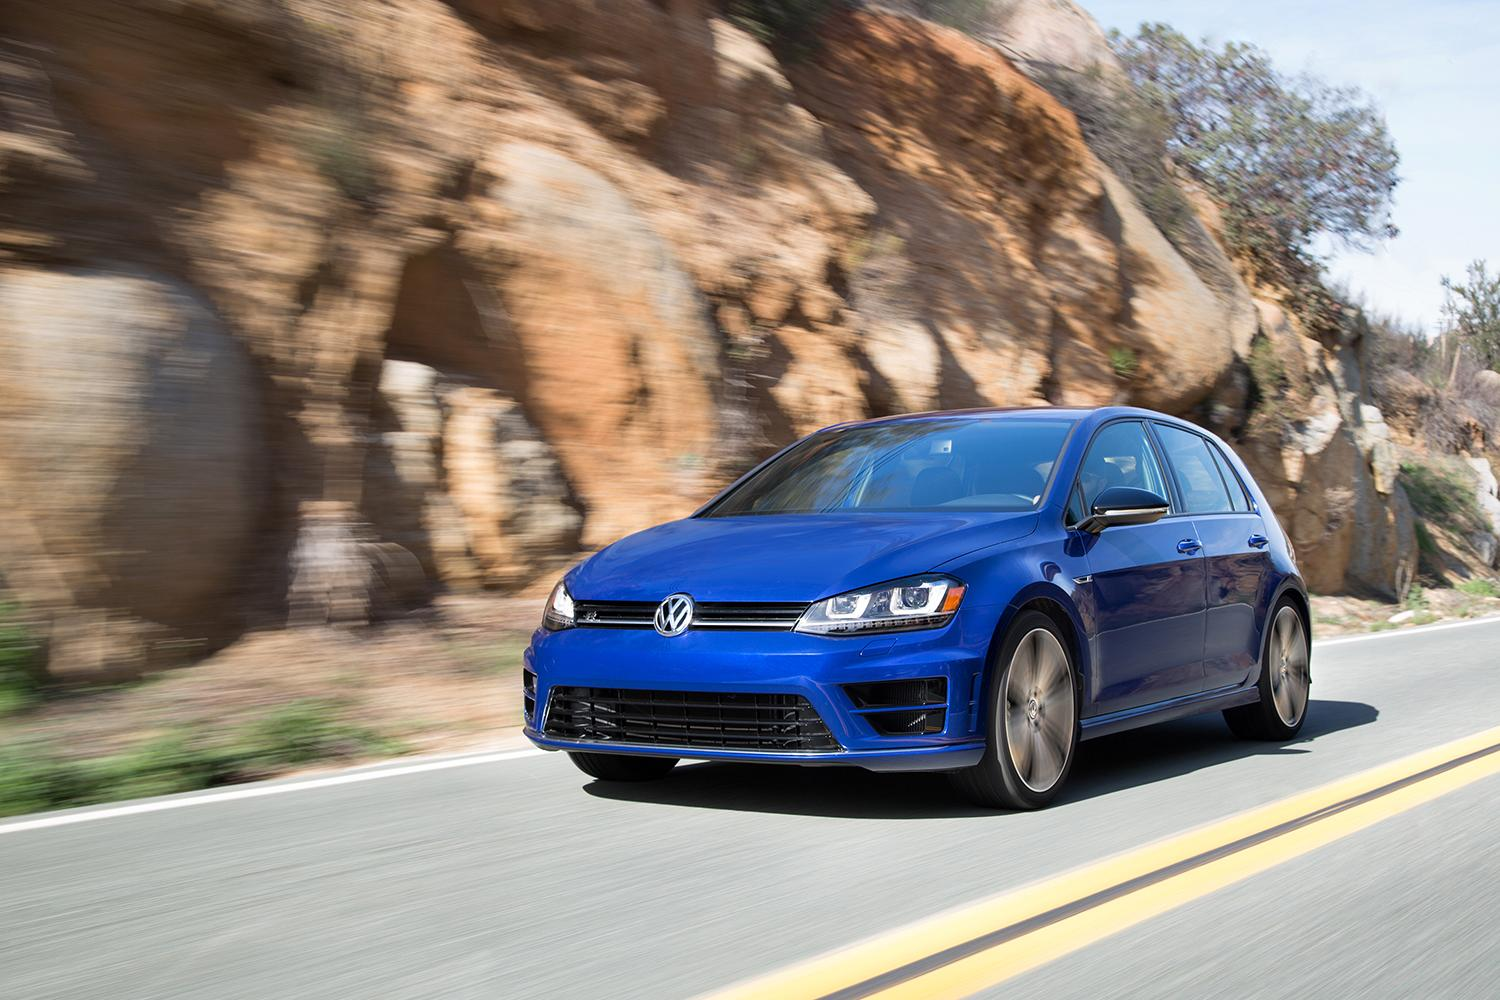 My Ford Benefits >> 2015 Volkswagen Golf R 4Motion All-Wheel Drive System fights physics, creating a middle-class ...